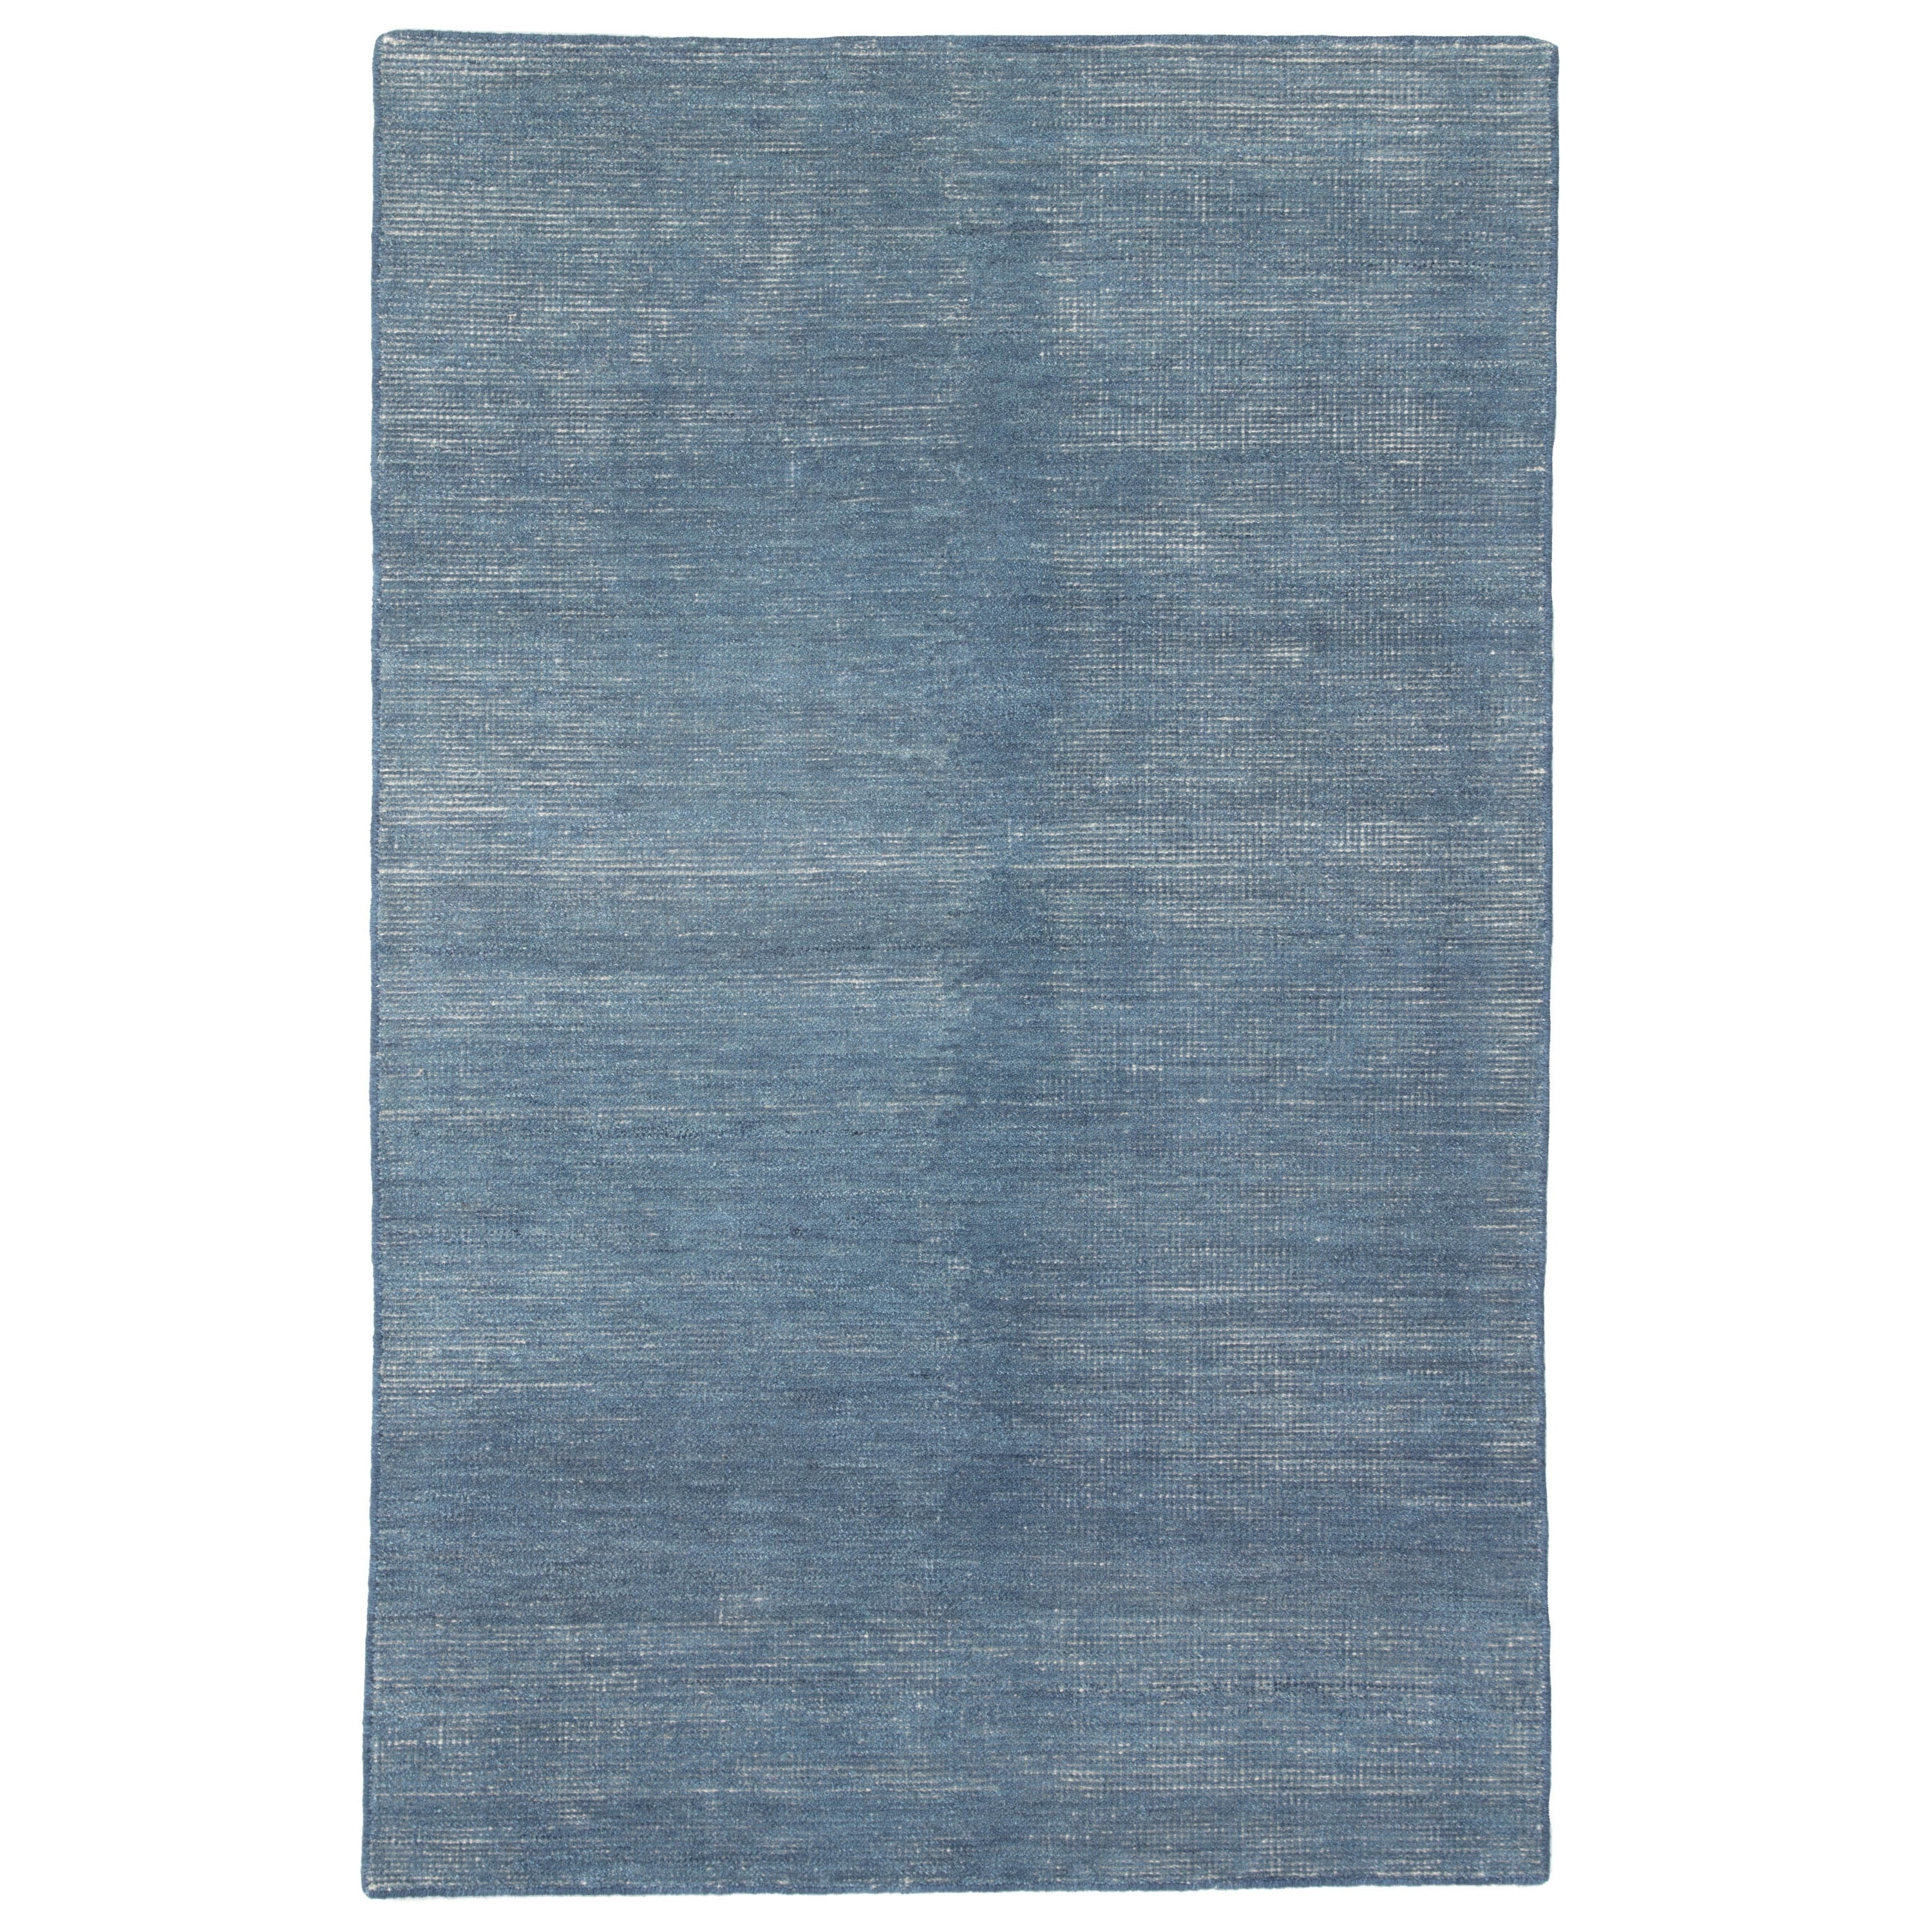 Hand Knotted Solid Blue Area Rug 8 X 10 7 10 X 9 10 Overstock 11351023